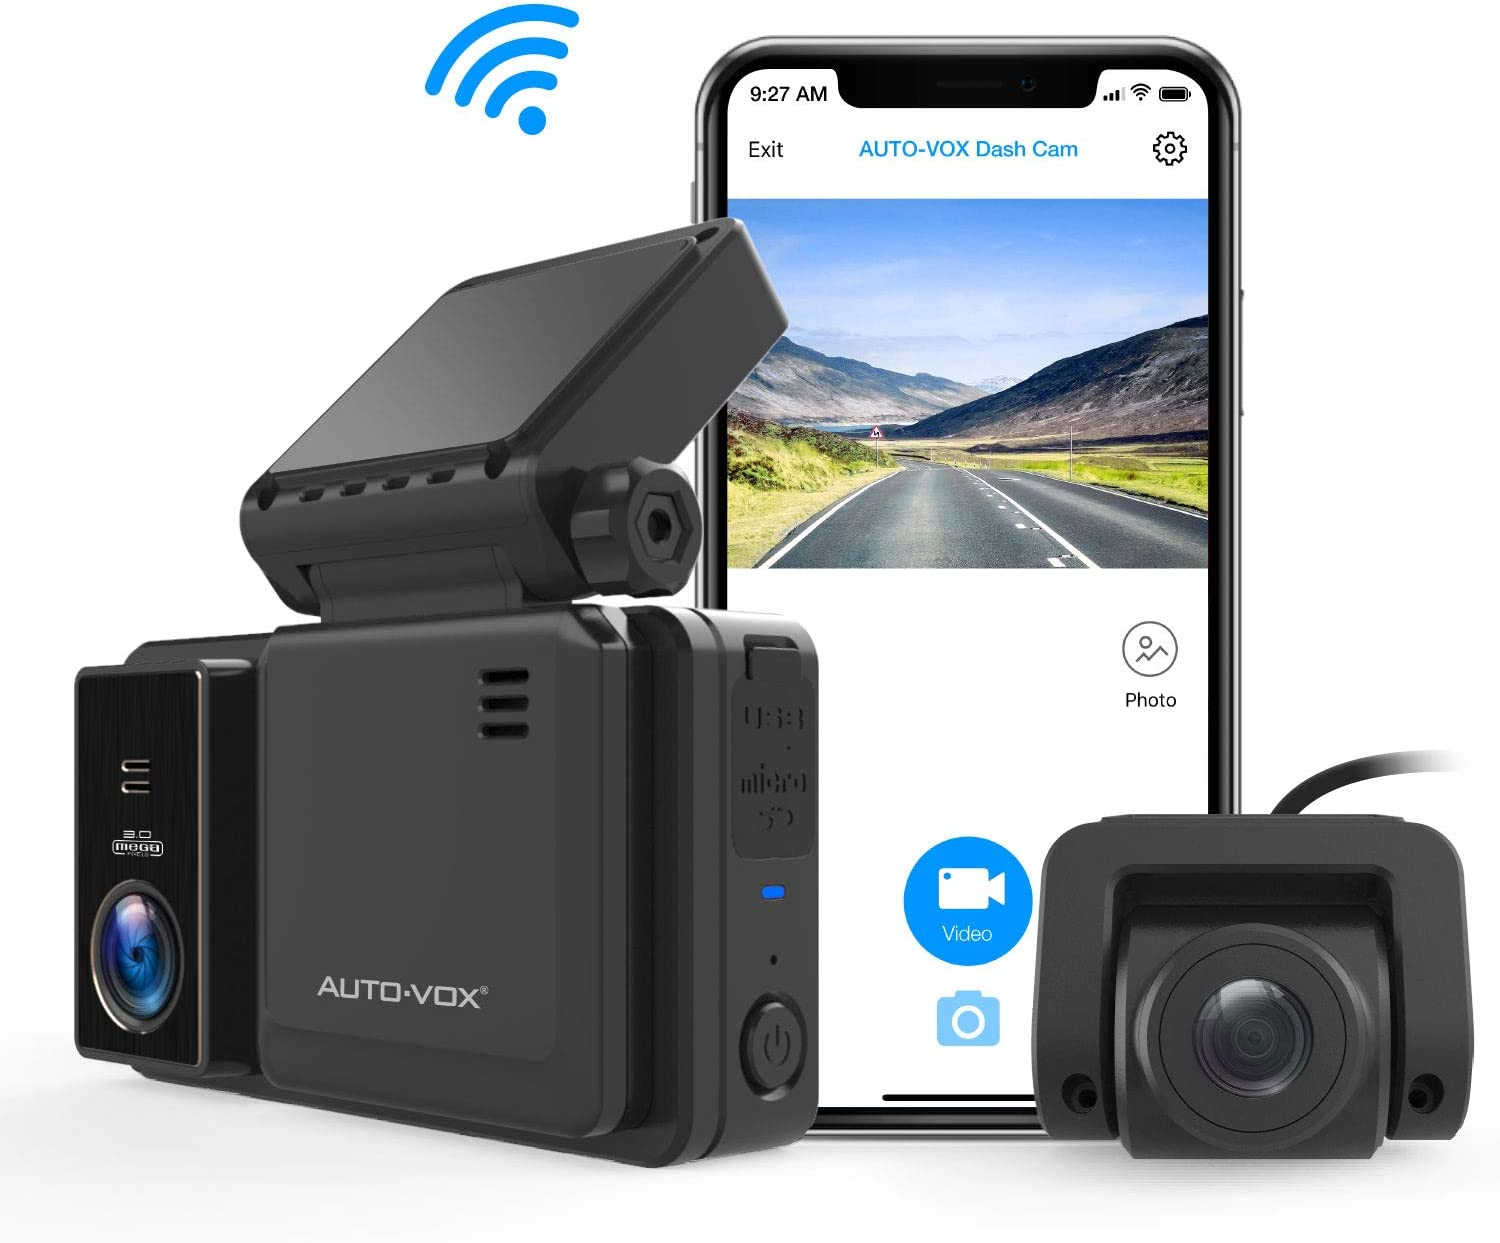 AUTO-VOX AD2 WiFi Dash cam Front and Rear FHD 1080P@30fps, Dash Camera for Cars with Sony Sensor, GPS Tracking,Loop Recording